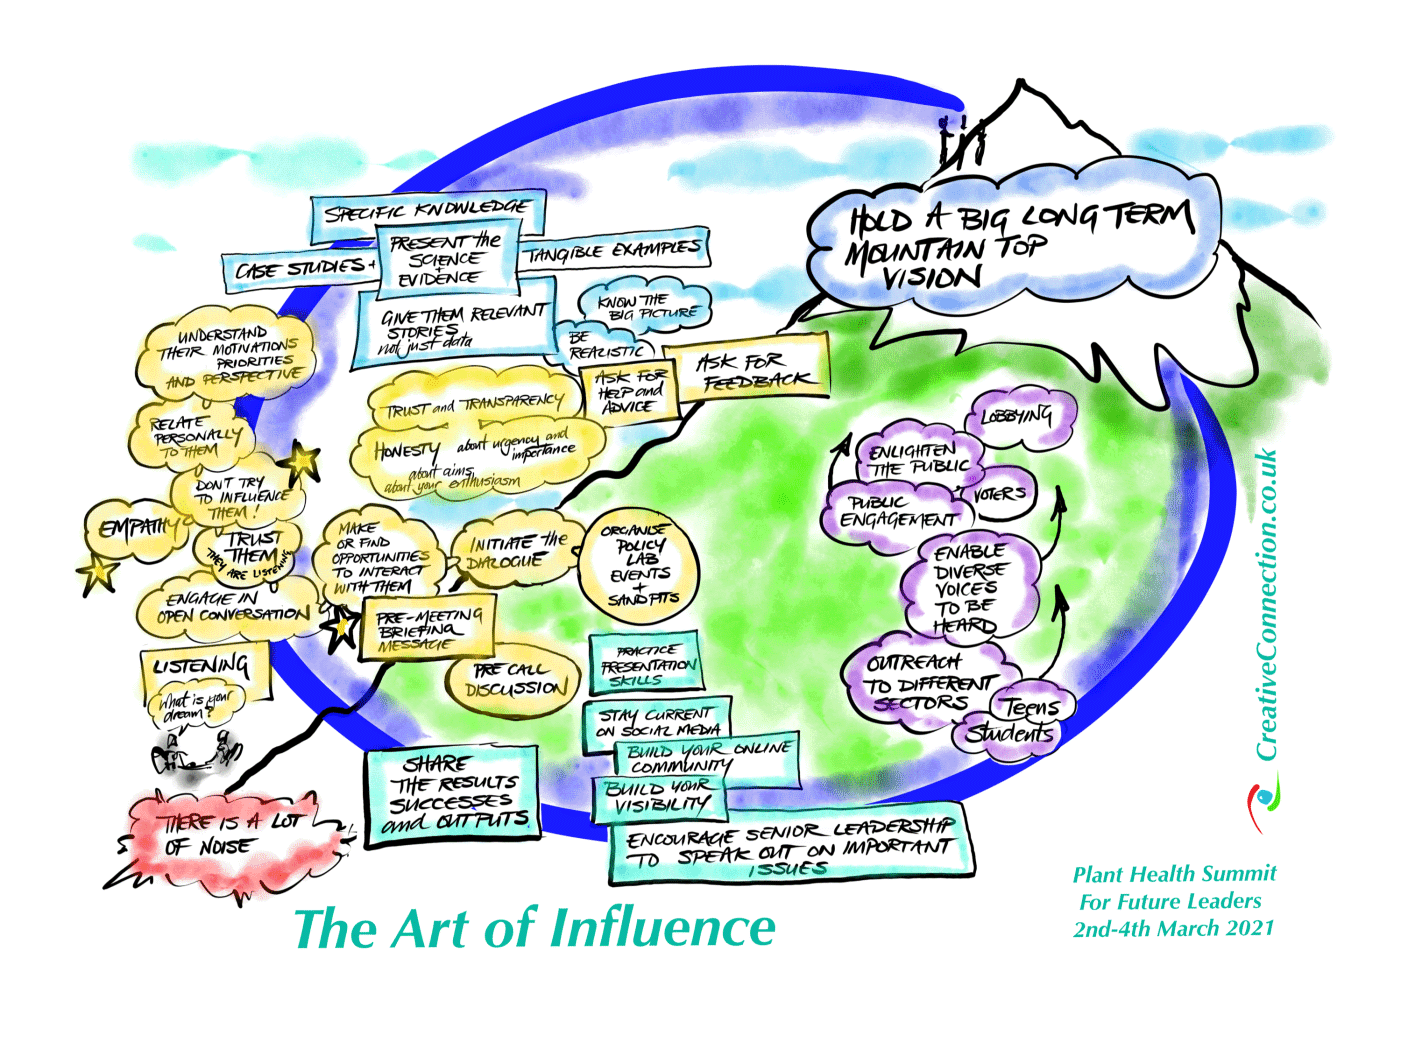 The art of influence thumbnail